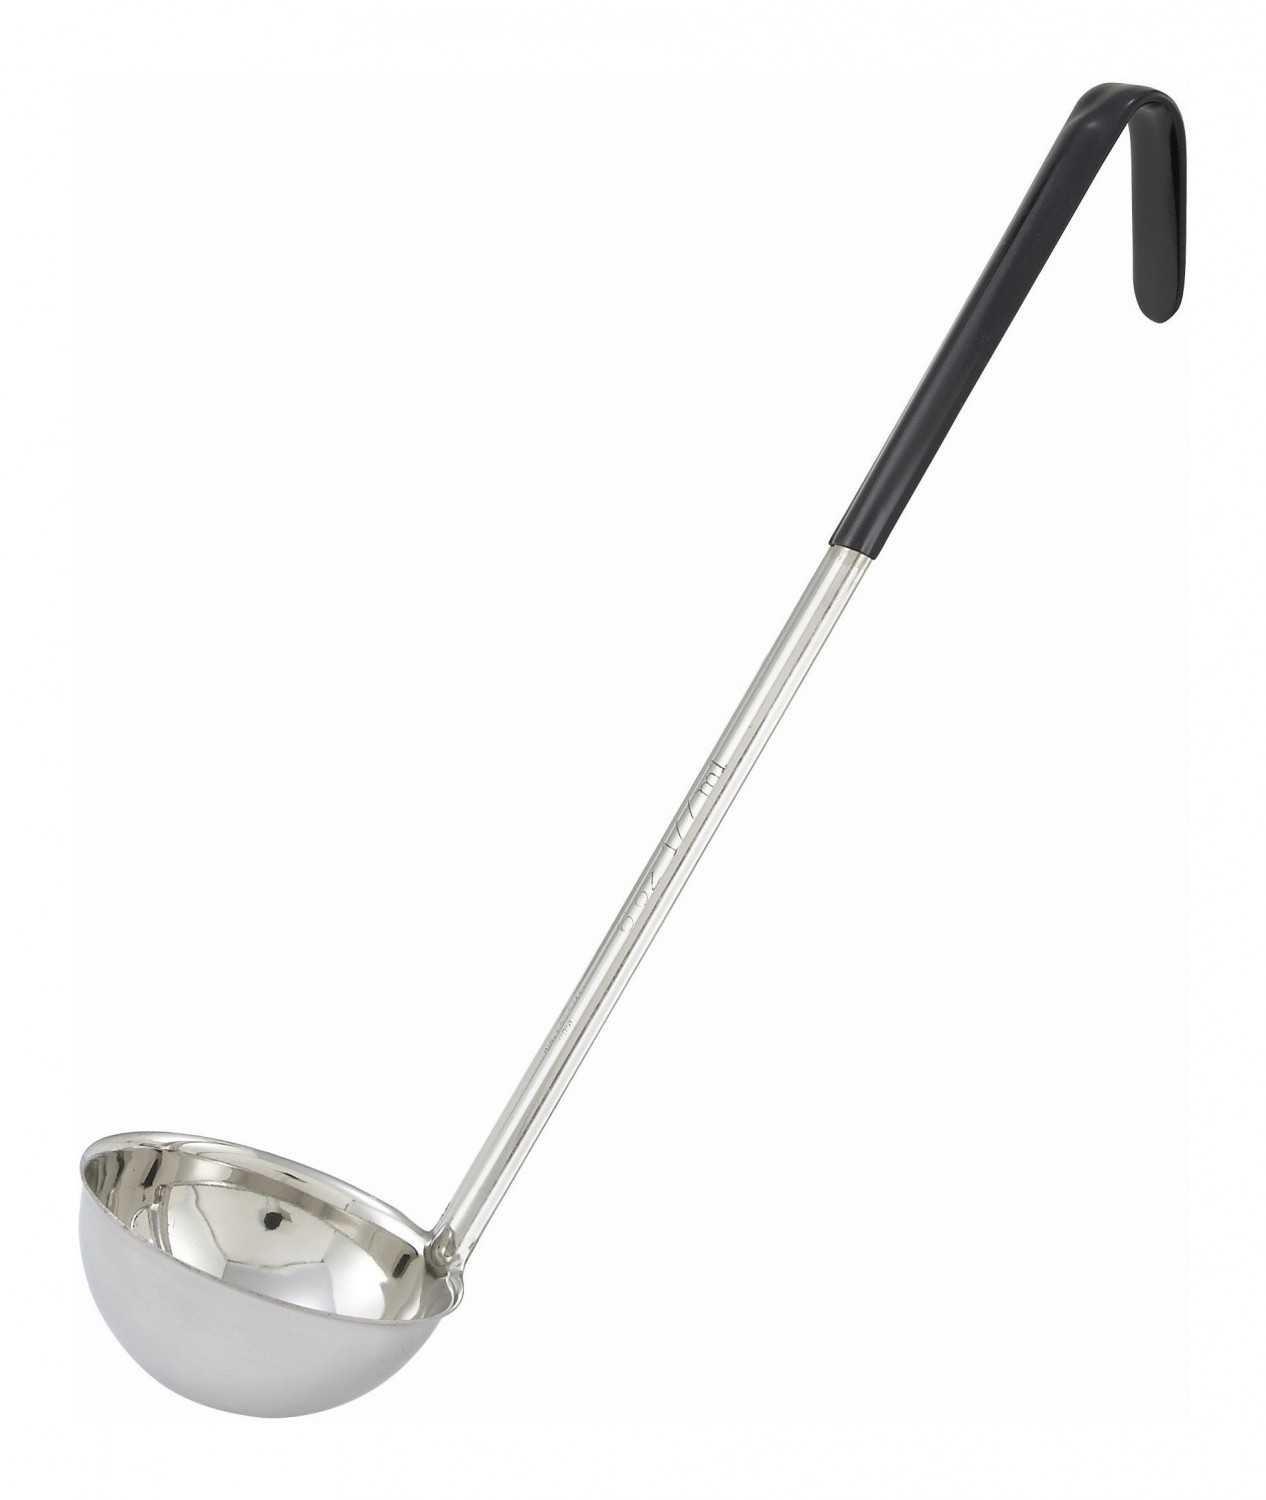 Winco LDC-6 Stainless Steel Ladle with Black Handle 6 oz.